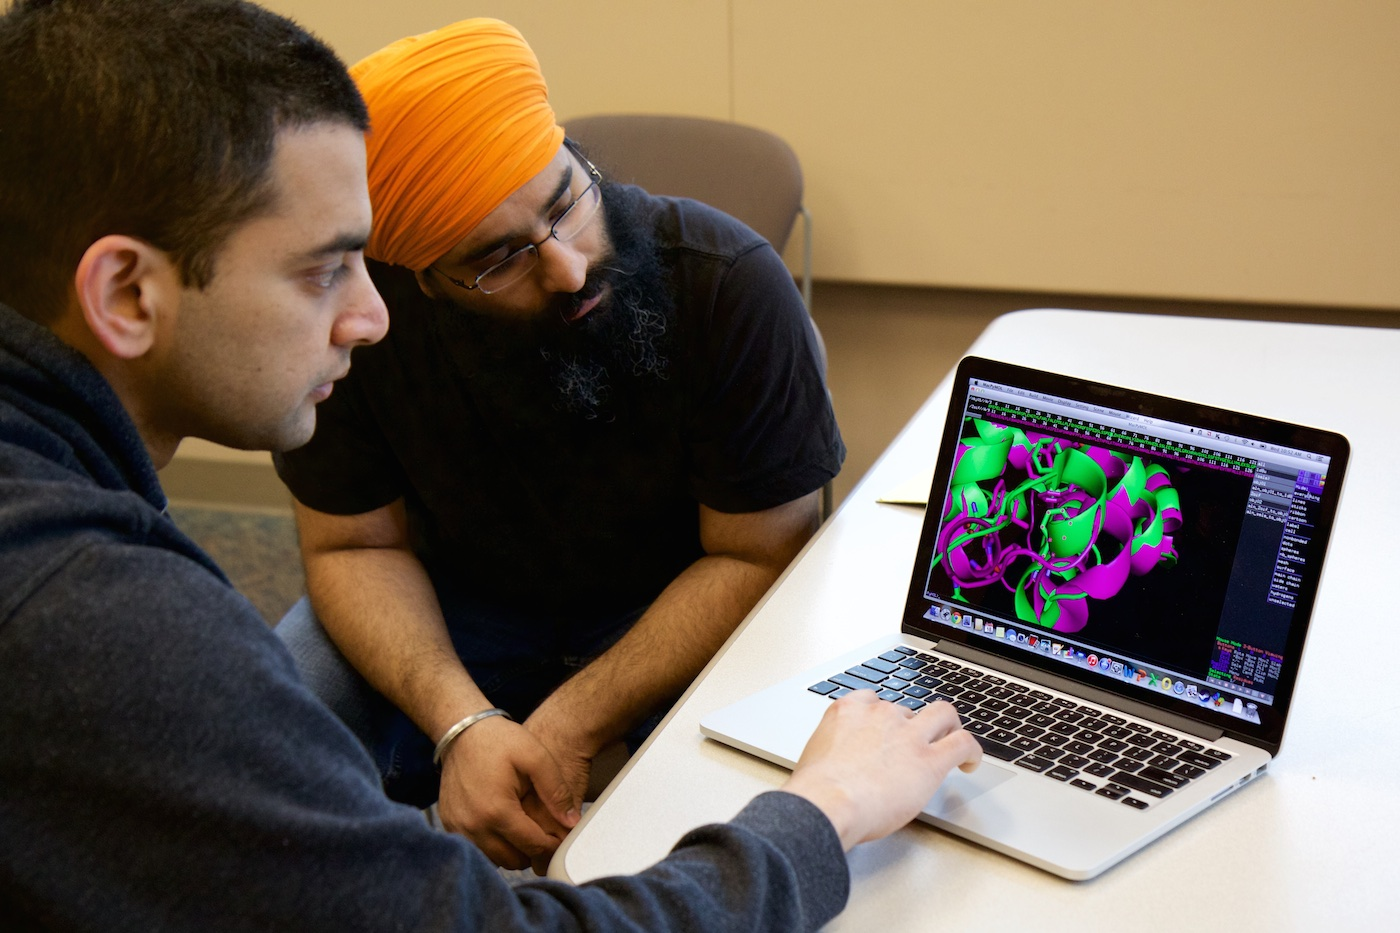 Jagannathan Alagurajan and Navjot Singh sit at a desk looking together at an image of an engineered protein on an apple laptop.